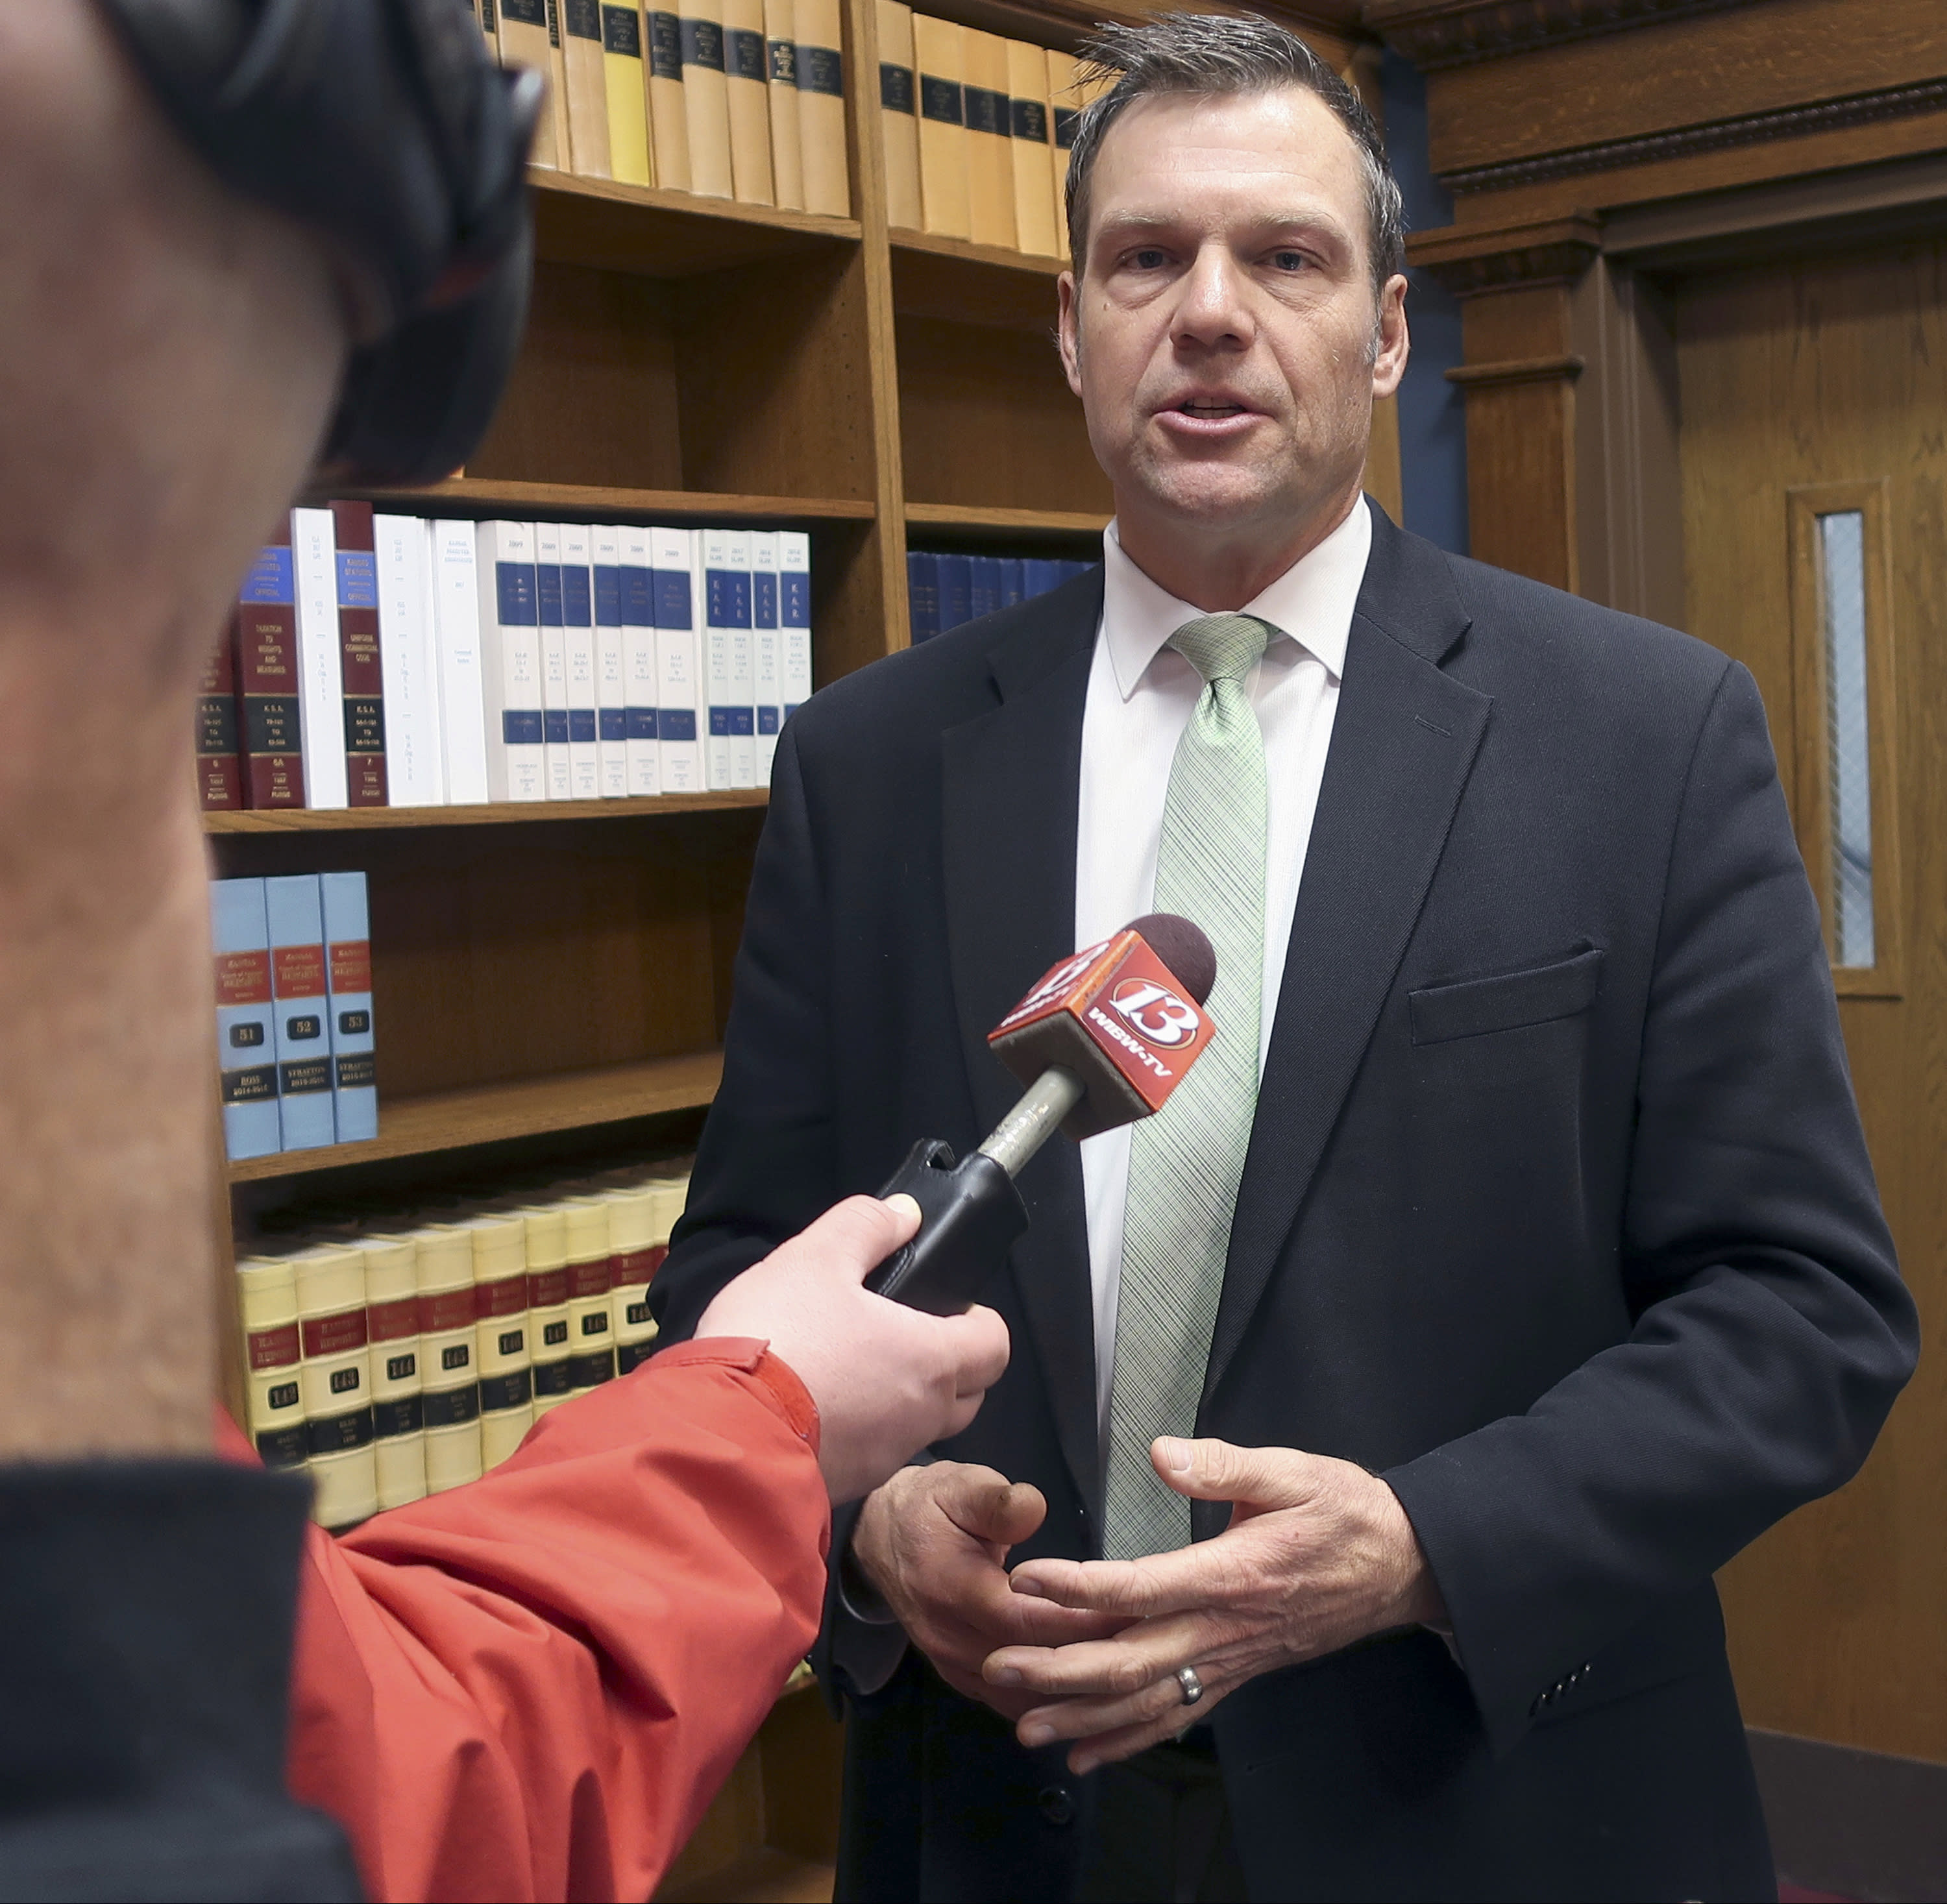 FILE - In this Nov. 30, 2018 file photo, then Kansas Secretary of State Kris Kobach responds to questions from reporters in Topeka, Kan. Schmidt announced Tuesday, June 2, 2020, that he will appeal a 10th U.S. Circuit Court of Appeals decision in April that said the state could not enforce a proof-of-citizenship law. An appeals-court panel said the law violated the U.S. Constitution's guarantee of equal legal protection as well as a federal voter registration law.(AP Photo/John Hanna, File)